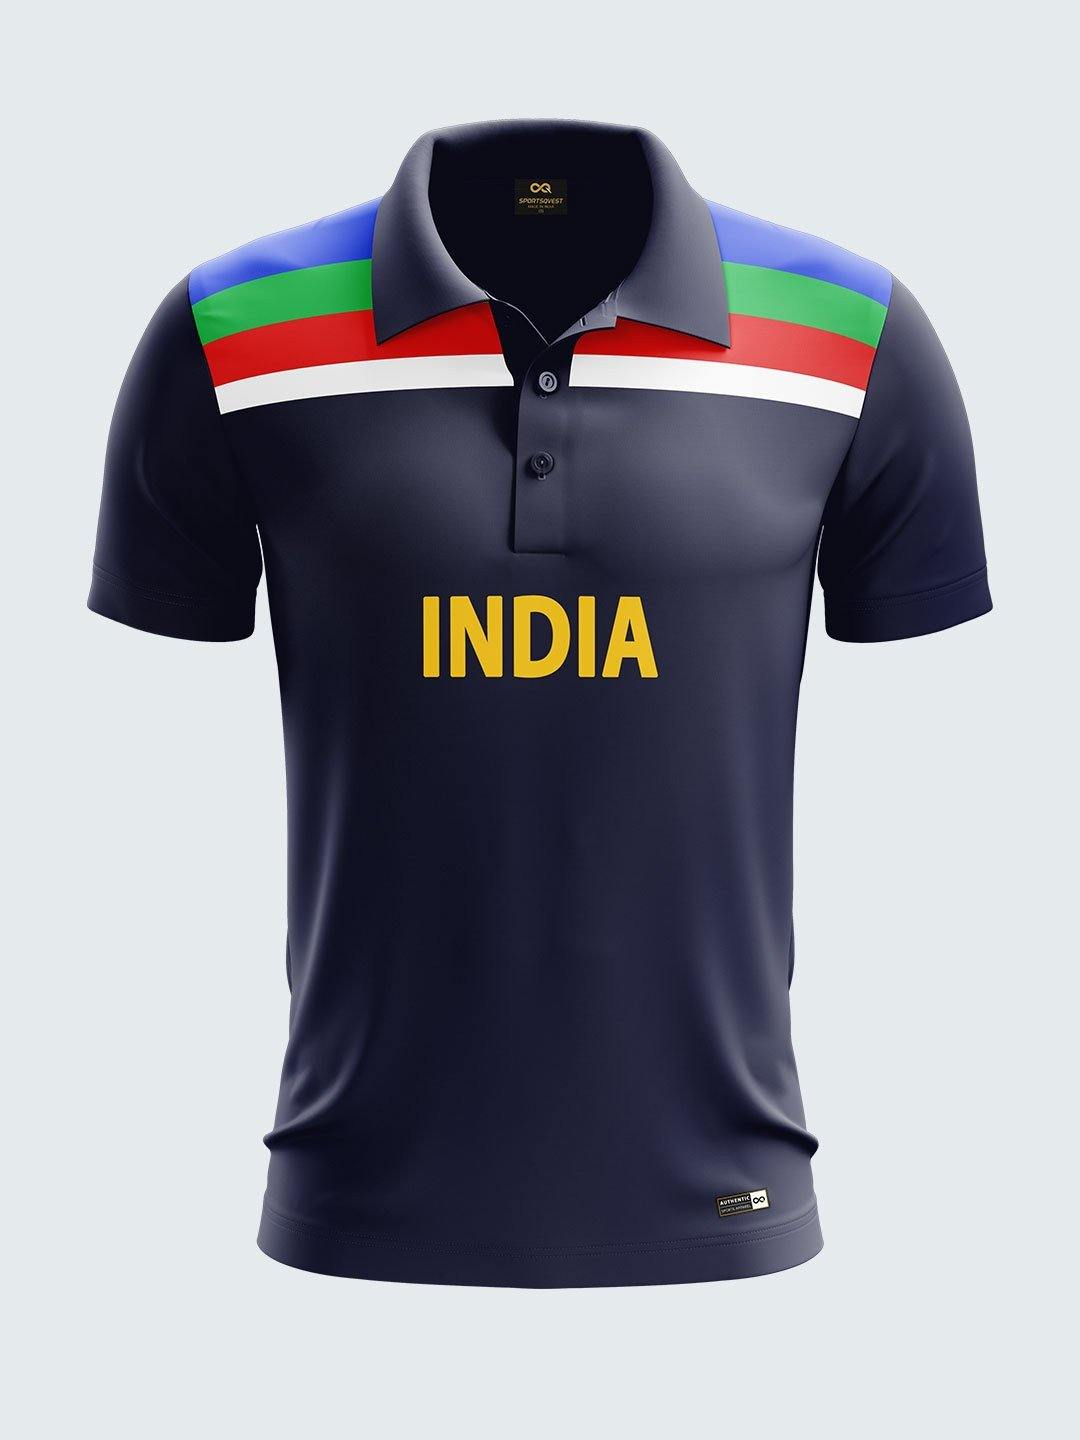 huge selection of 898f3 96c4b 1992 India Retro World Cup Fan Jersey Printed Polo T-shirt ...